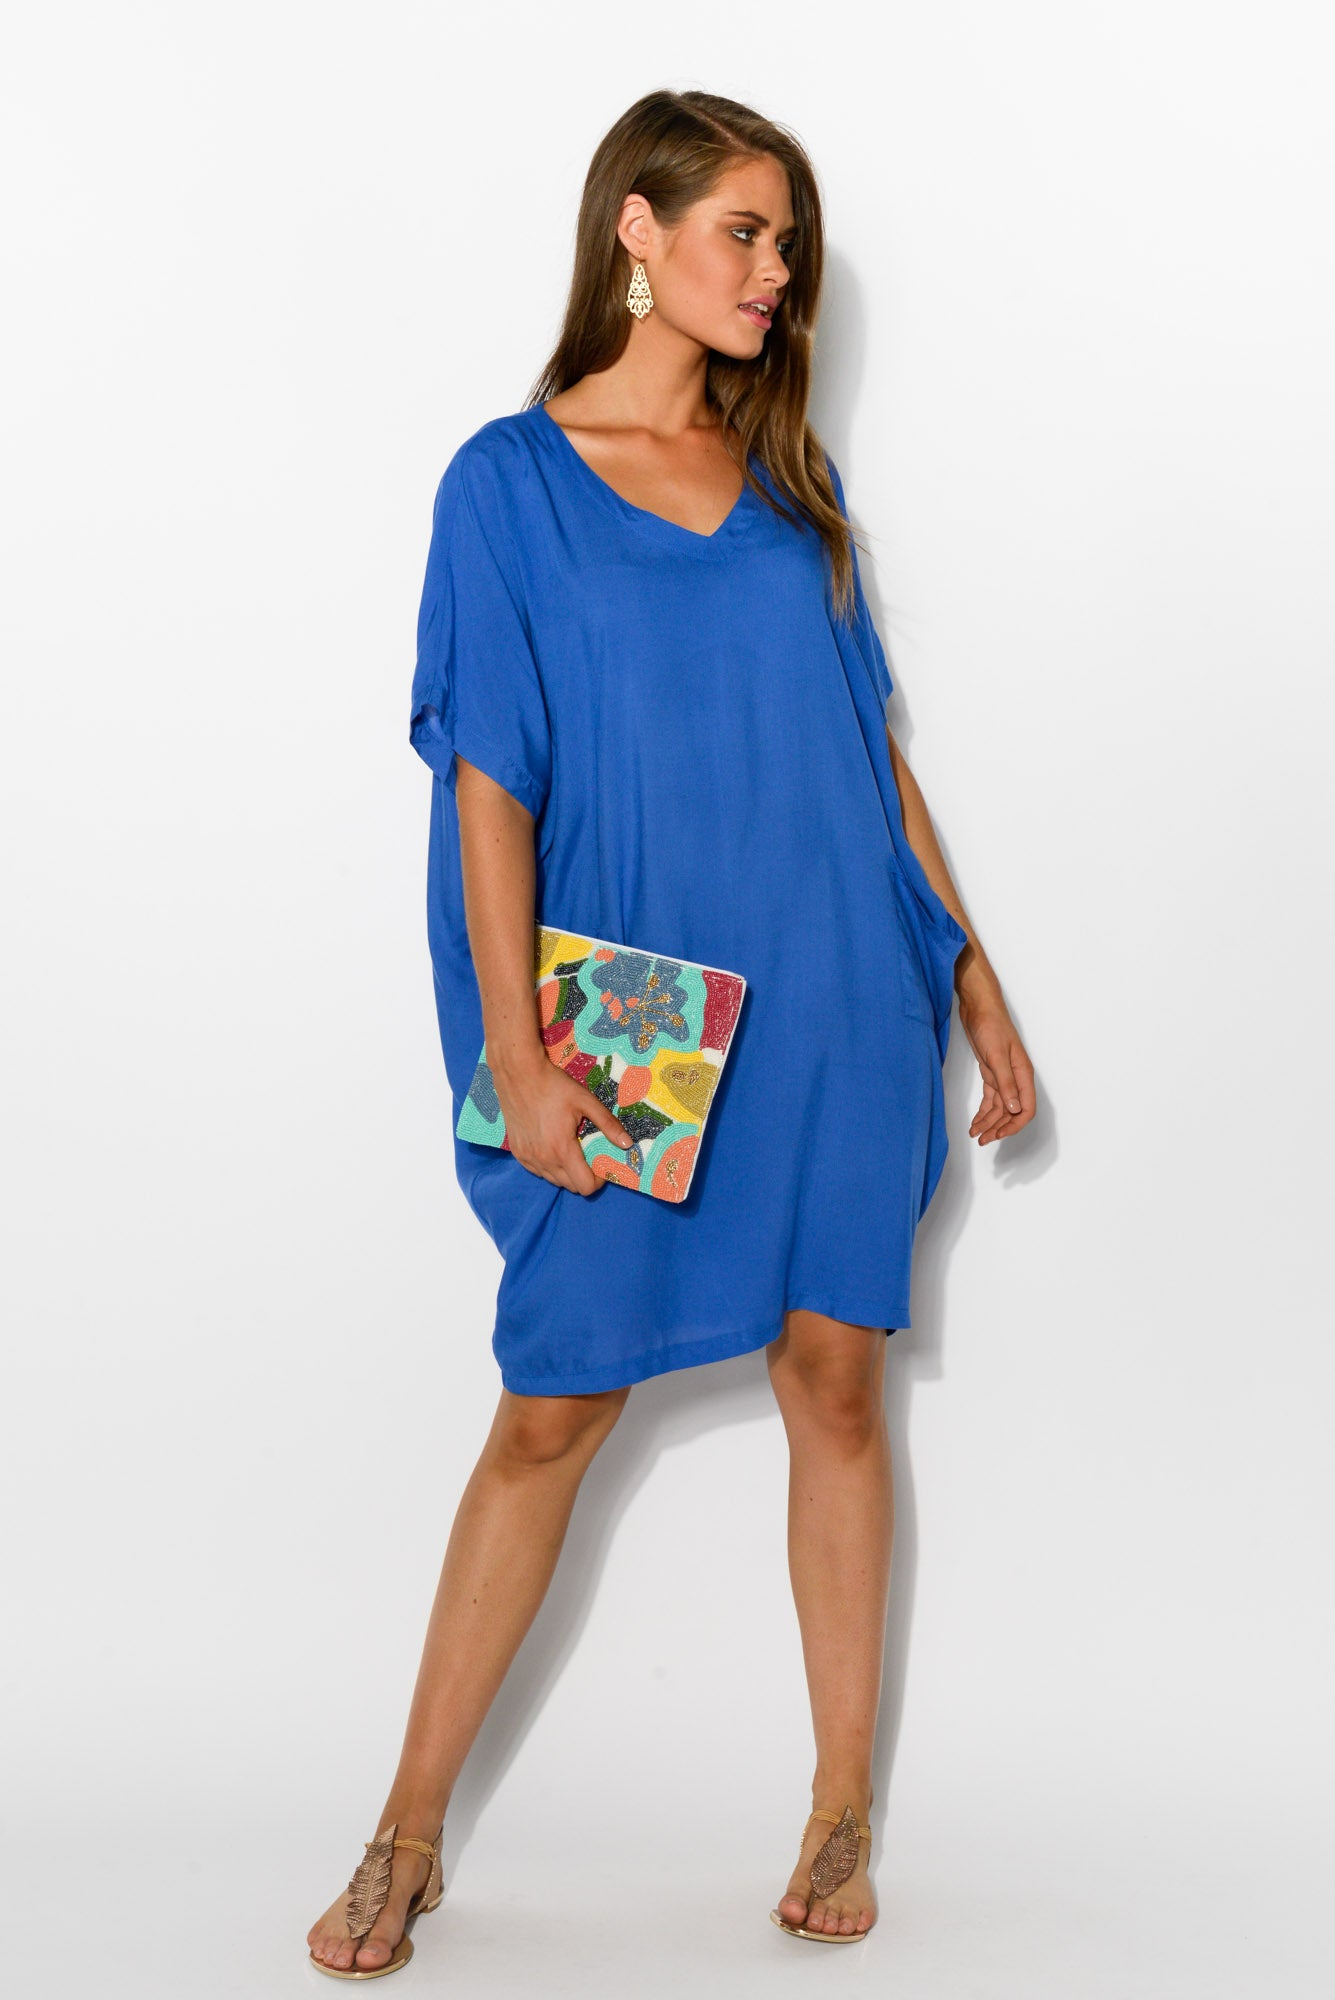 Cobalt Blue Iris Drape Tee Dress - Blue Bungalow